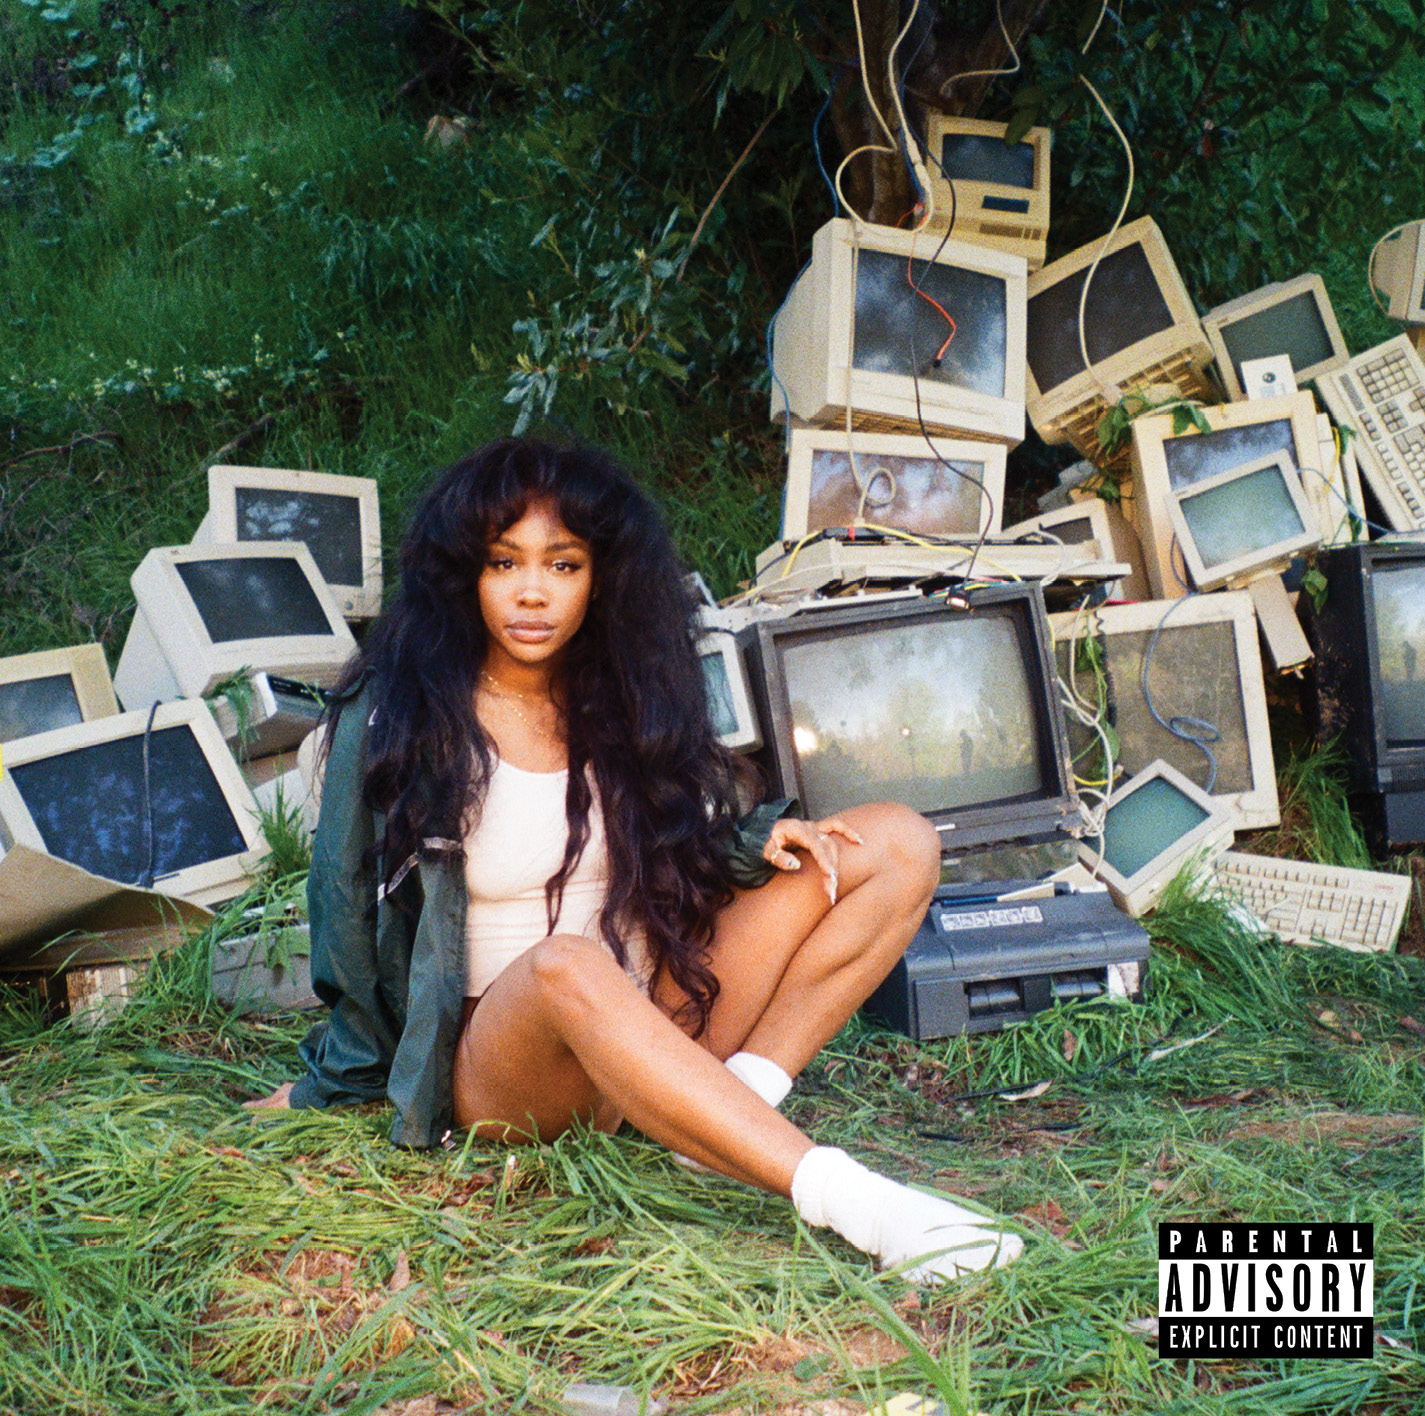 sza album artwork ctrl album explicit Top 50 Albums of 2017